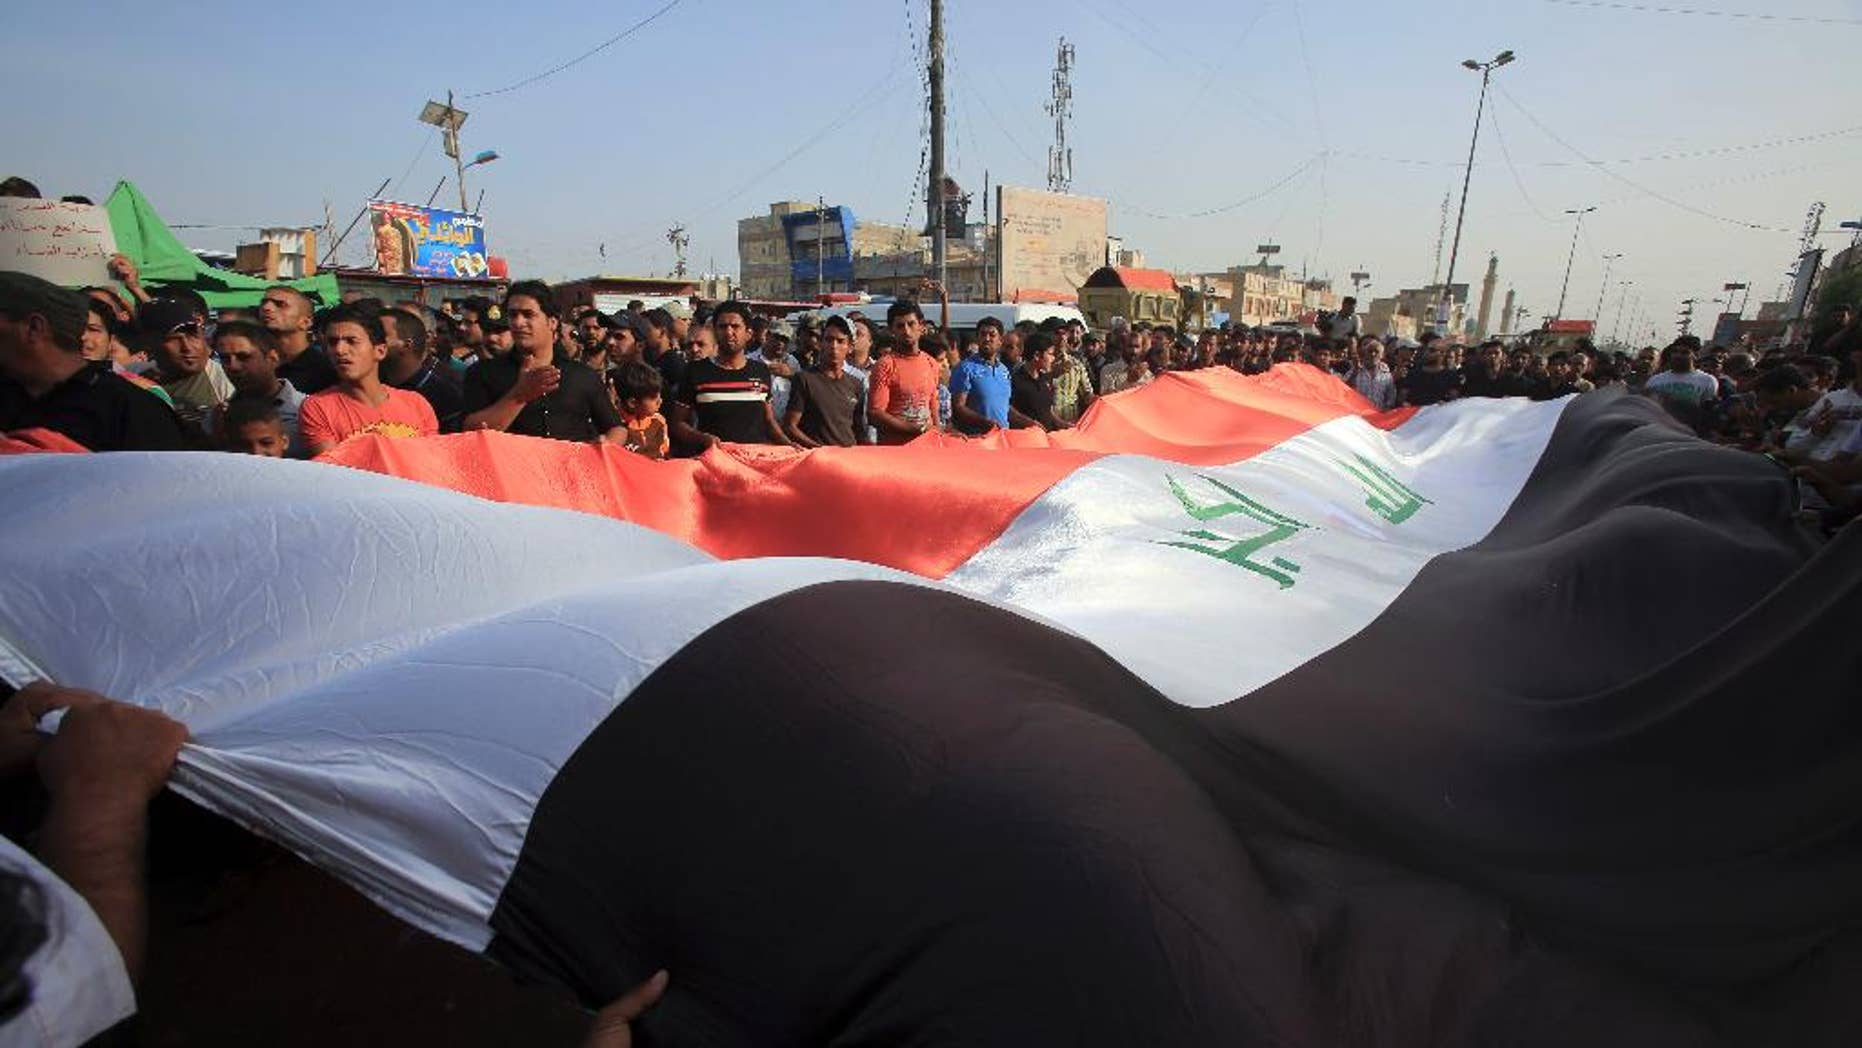 Protesters wave a giant Iraq flag as they chant anti-government slogans during a demonstration against the security forces' failure to protect them from car bombs Thursday.